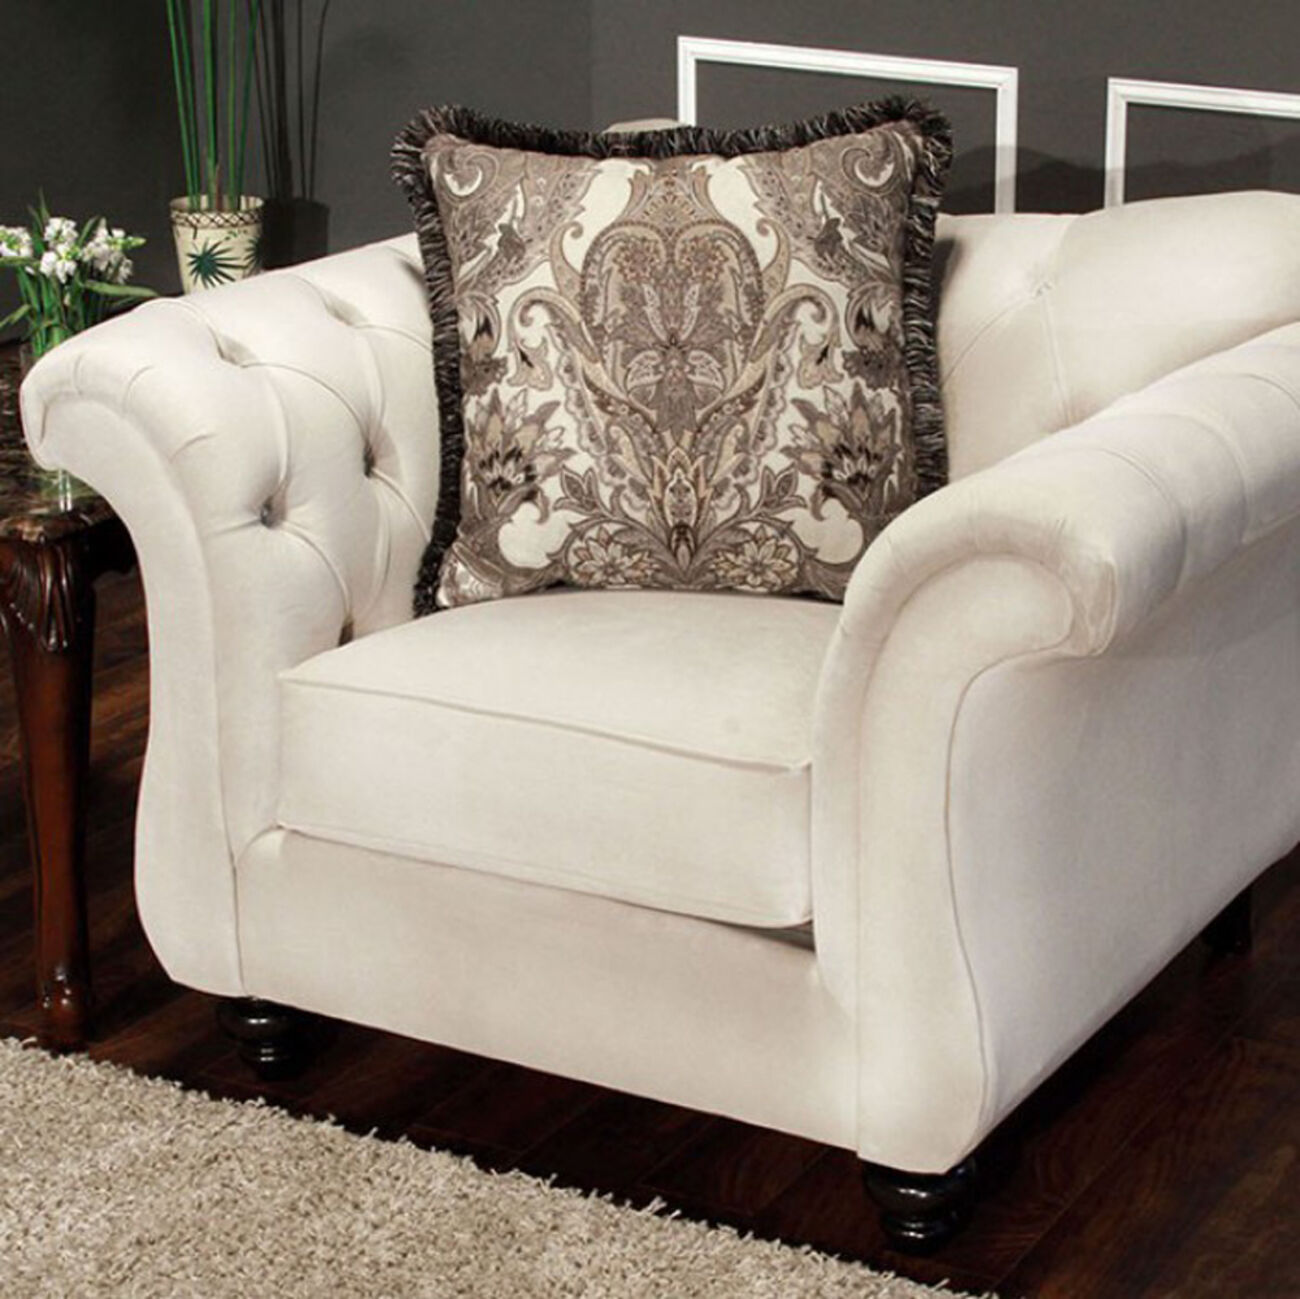 Antoinette Beige Premium Fabric Chair